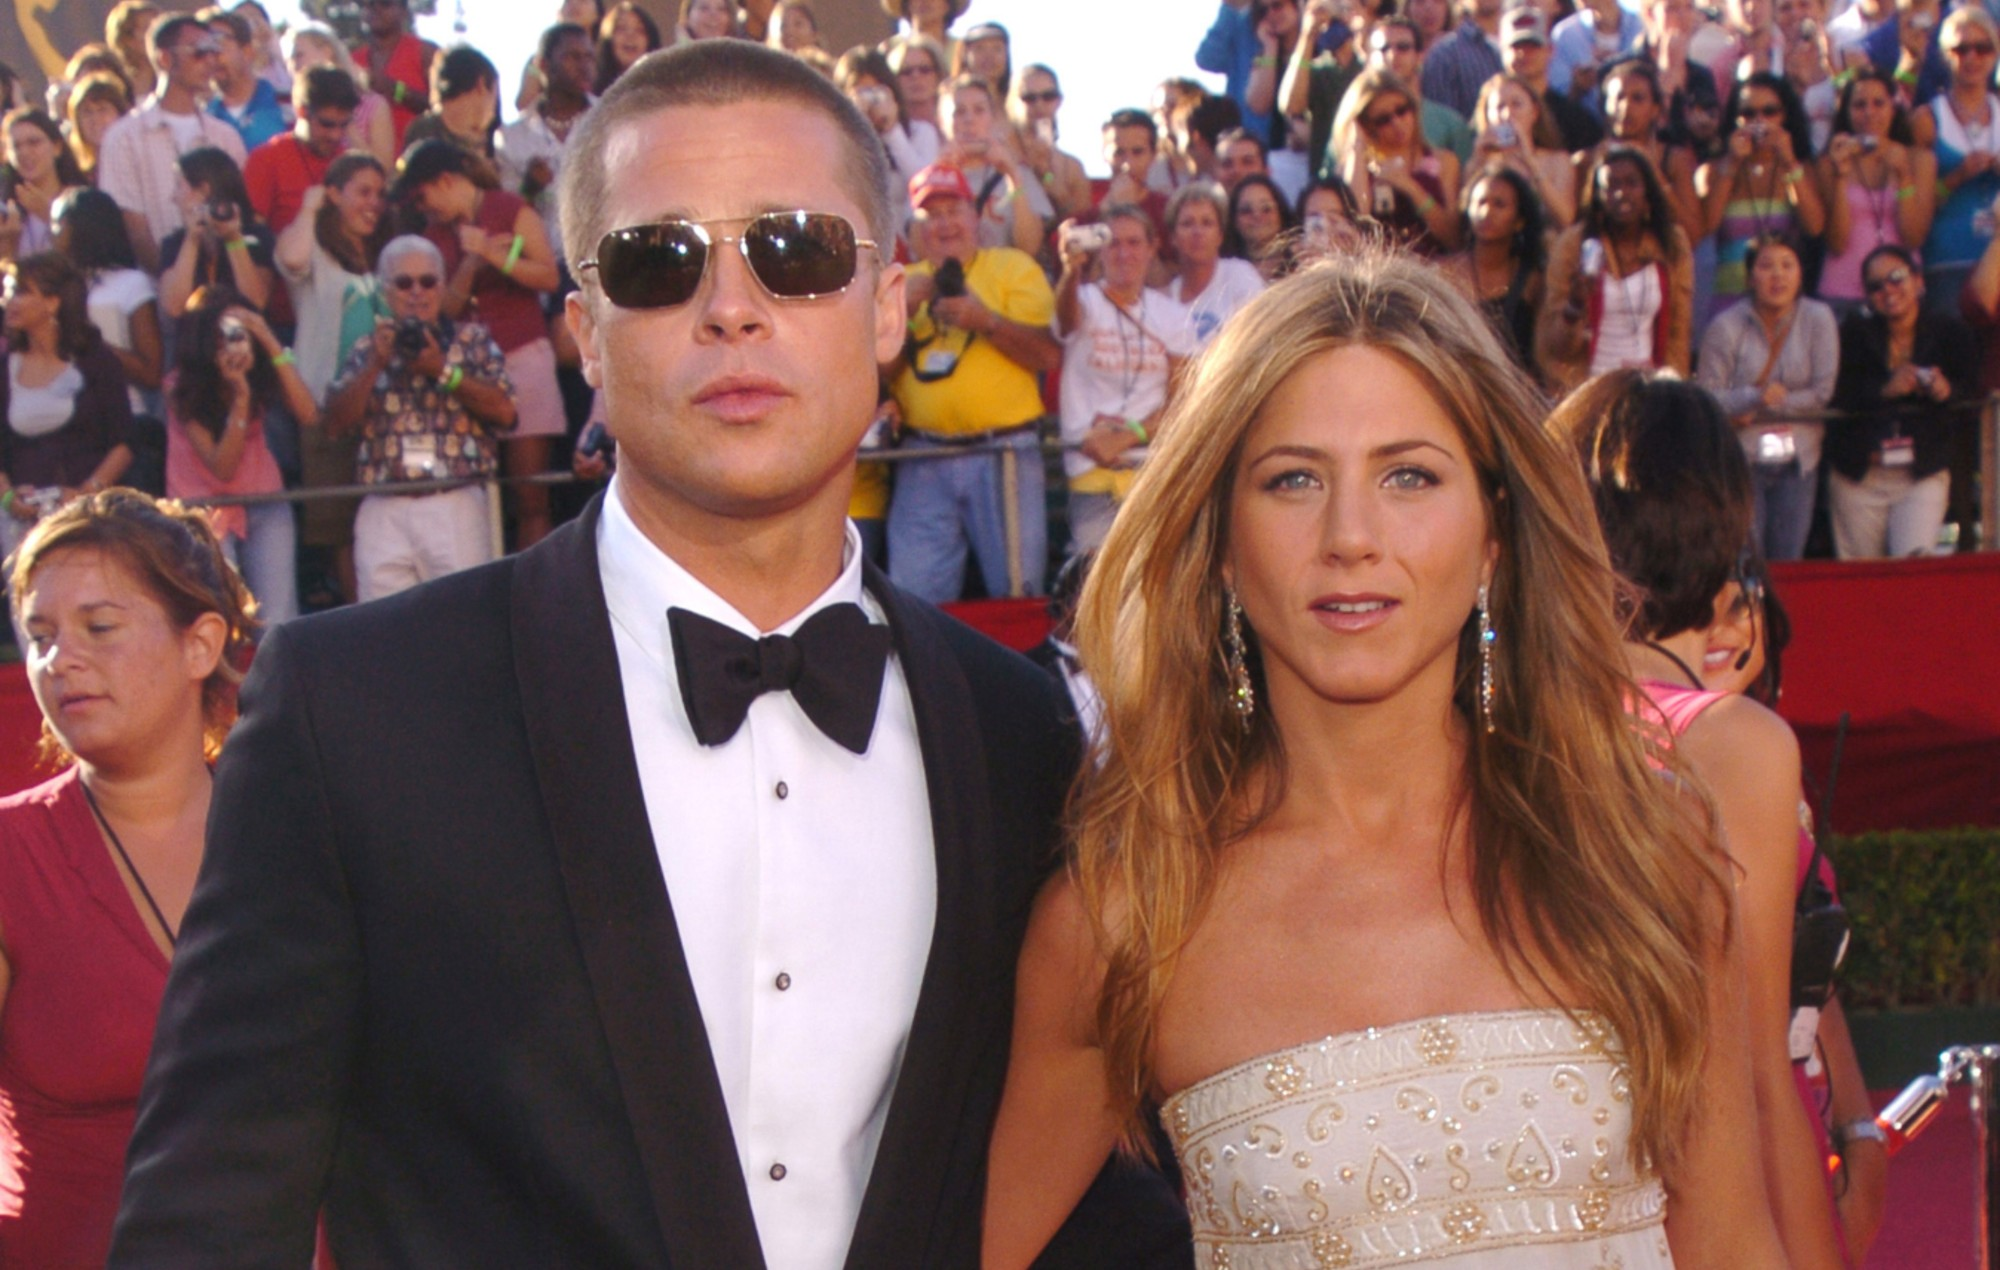 Watch Jennifer Aniston and Brad Pitt in 'Fast Times at Ridgemont High' table read